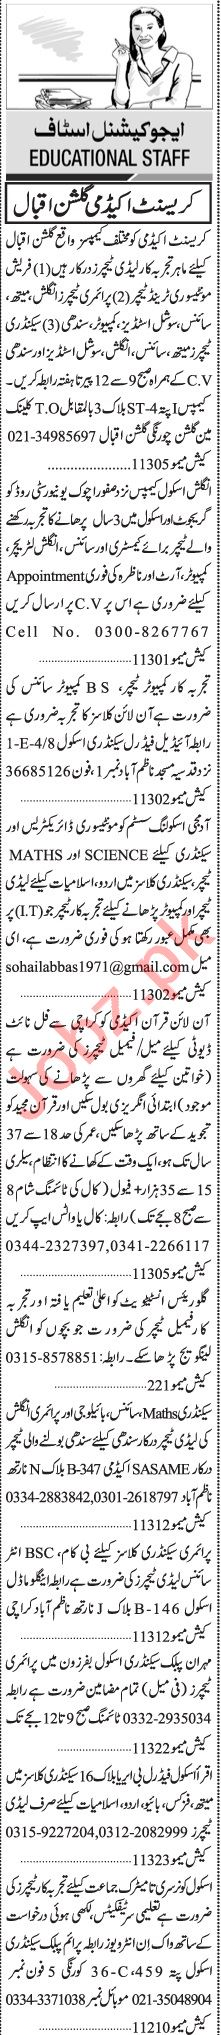 Jang Sunday Classified Ads 1st August 2021 for Educational